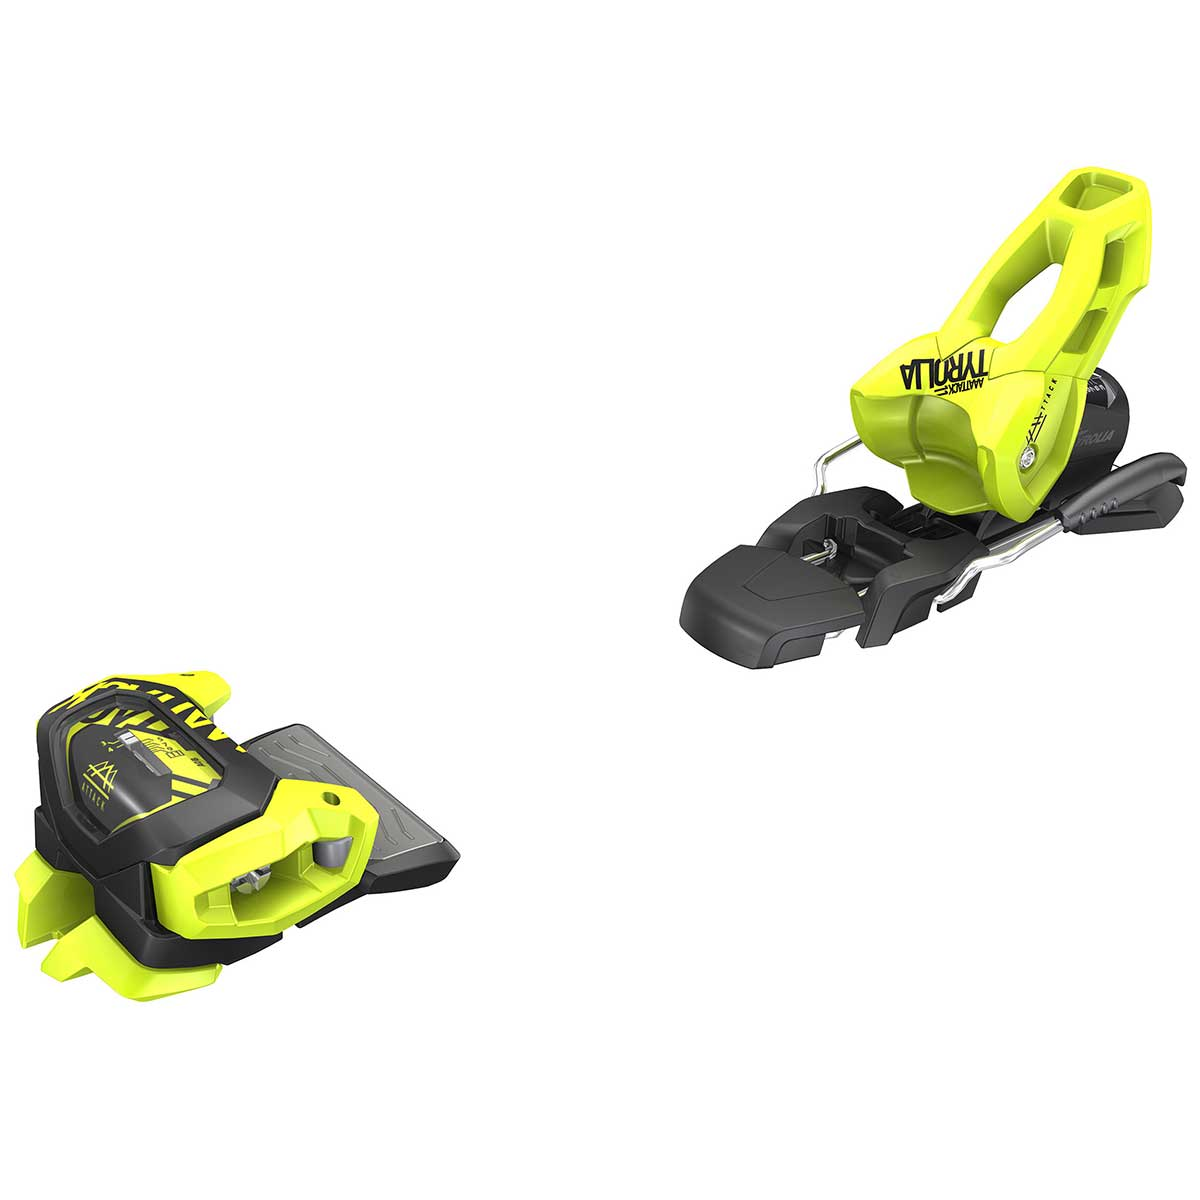 Tyrolia Attack2 11 GW ski binding in flash yellow